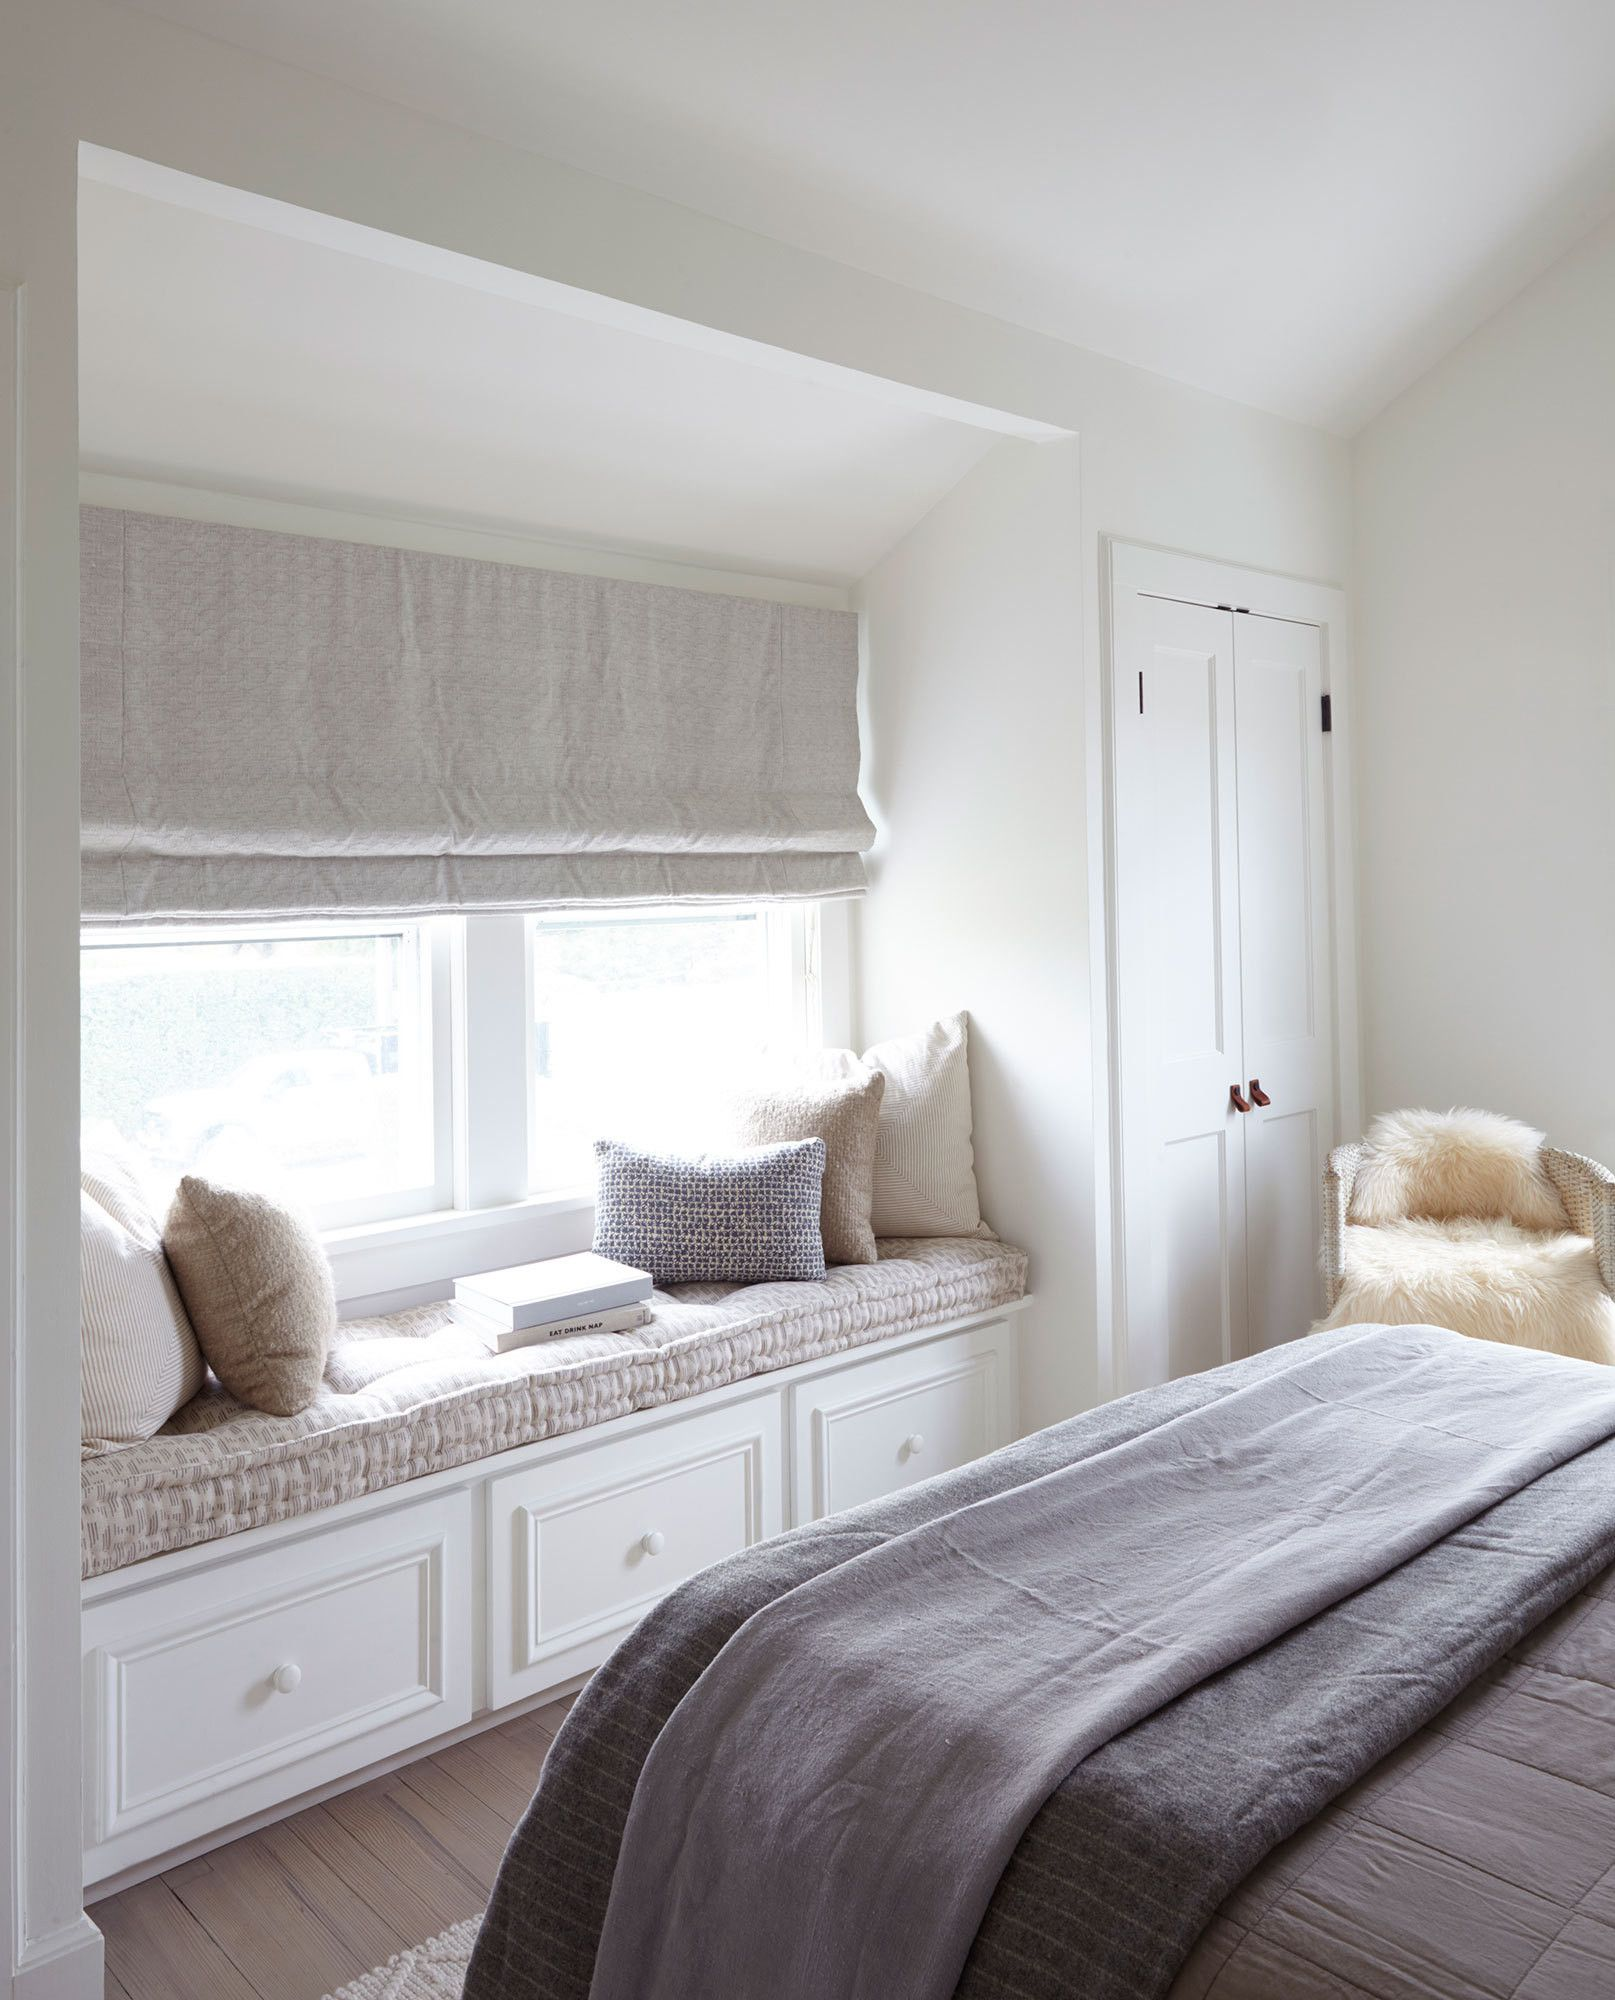 Window seat with bed  bench warmer  bedroom  pinterest  patios window and bench